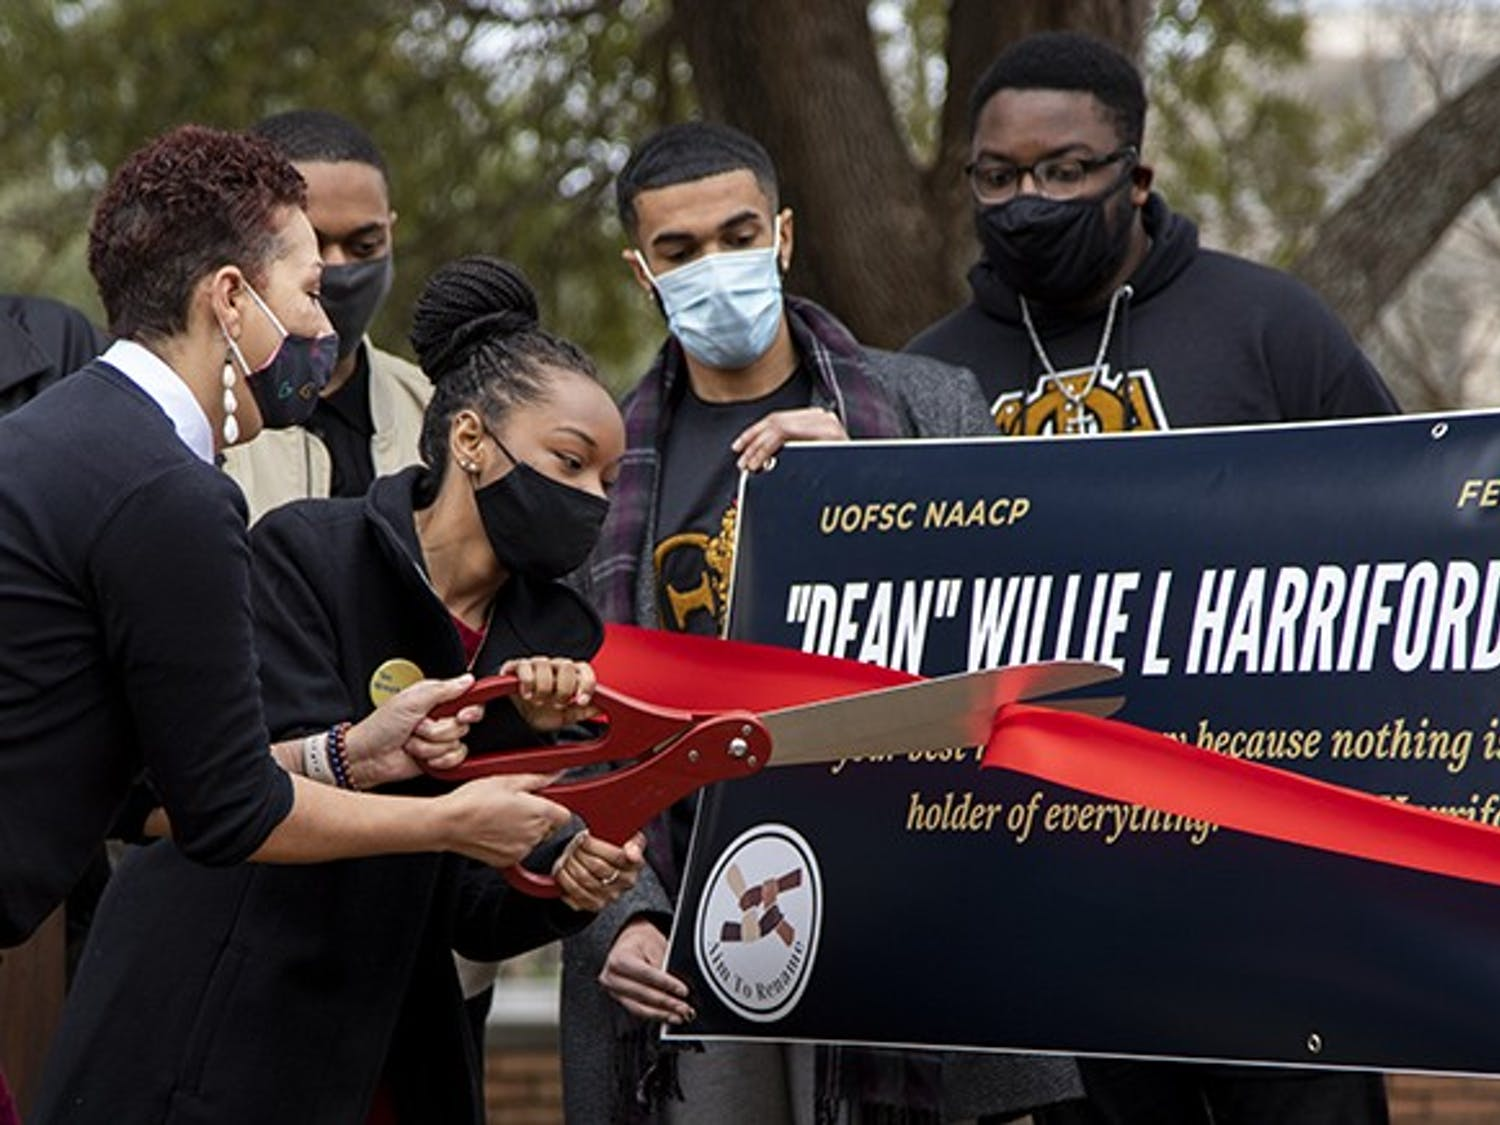 NAACP chapter President Caley Bright cuts the ribbon during the NAACP press conference.